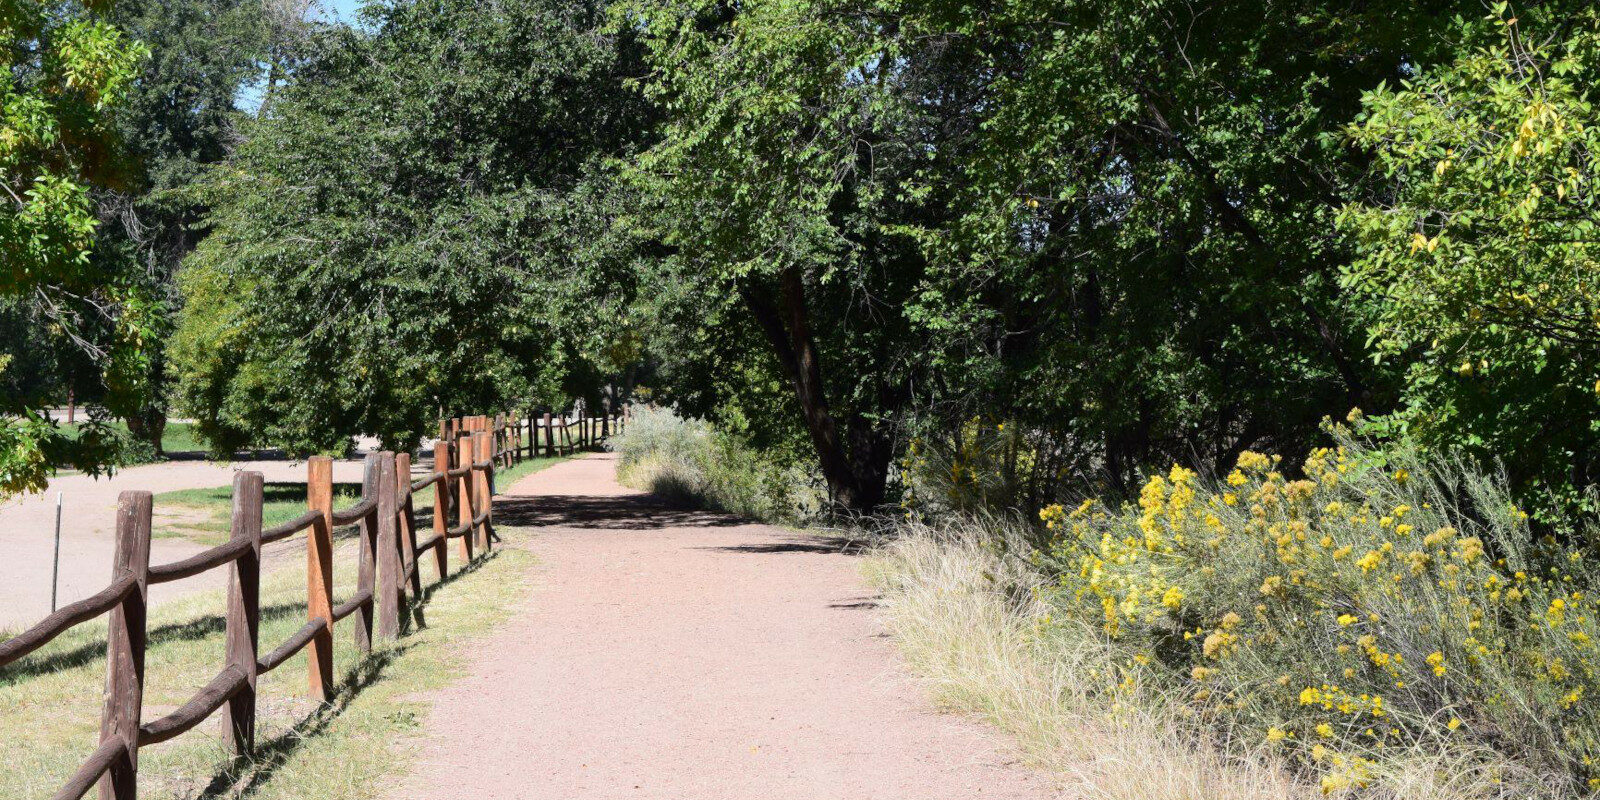 Image of a trail at the John Griffin Regional Park in Canon City, Colorado